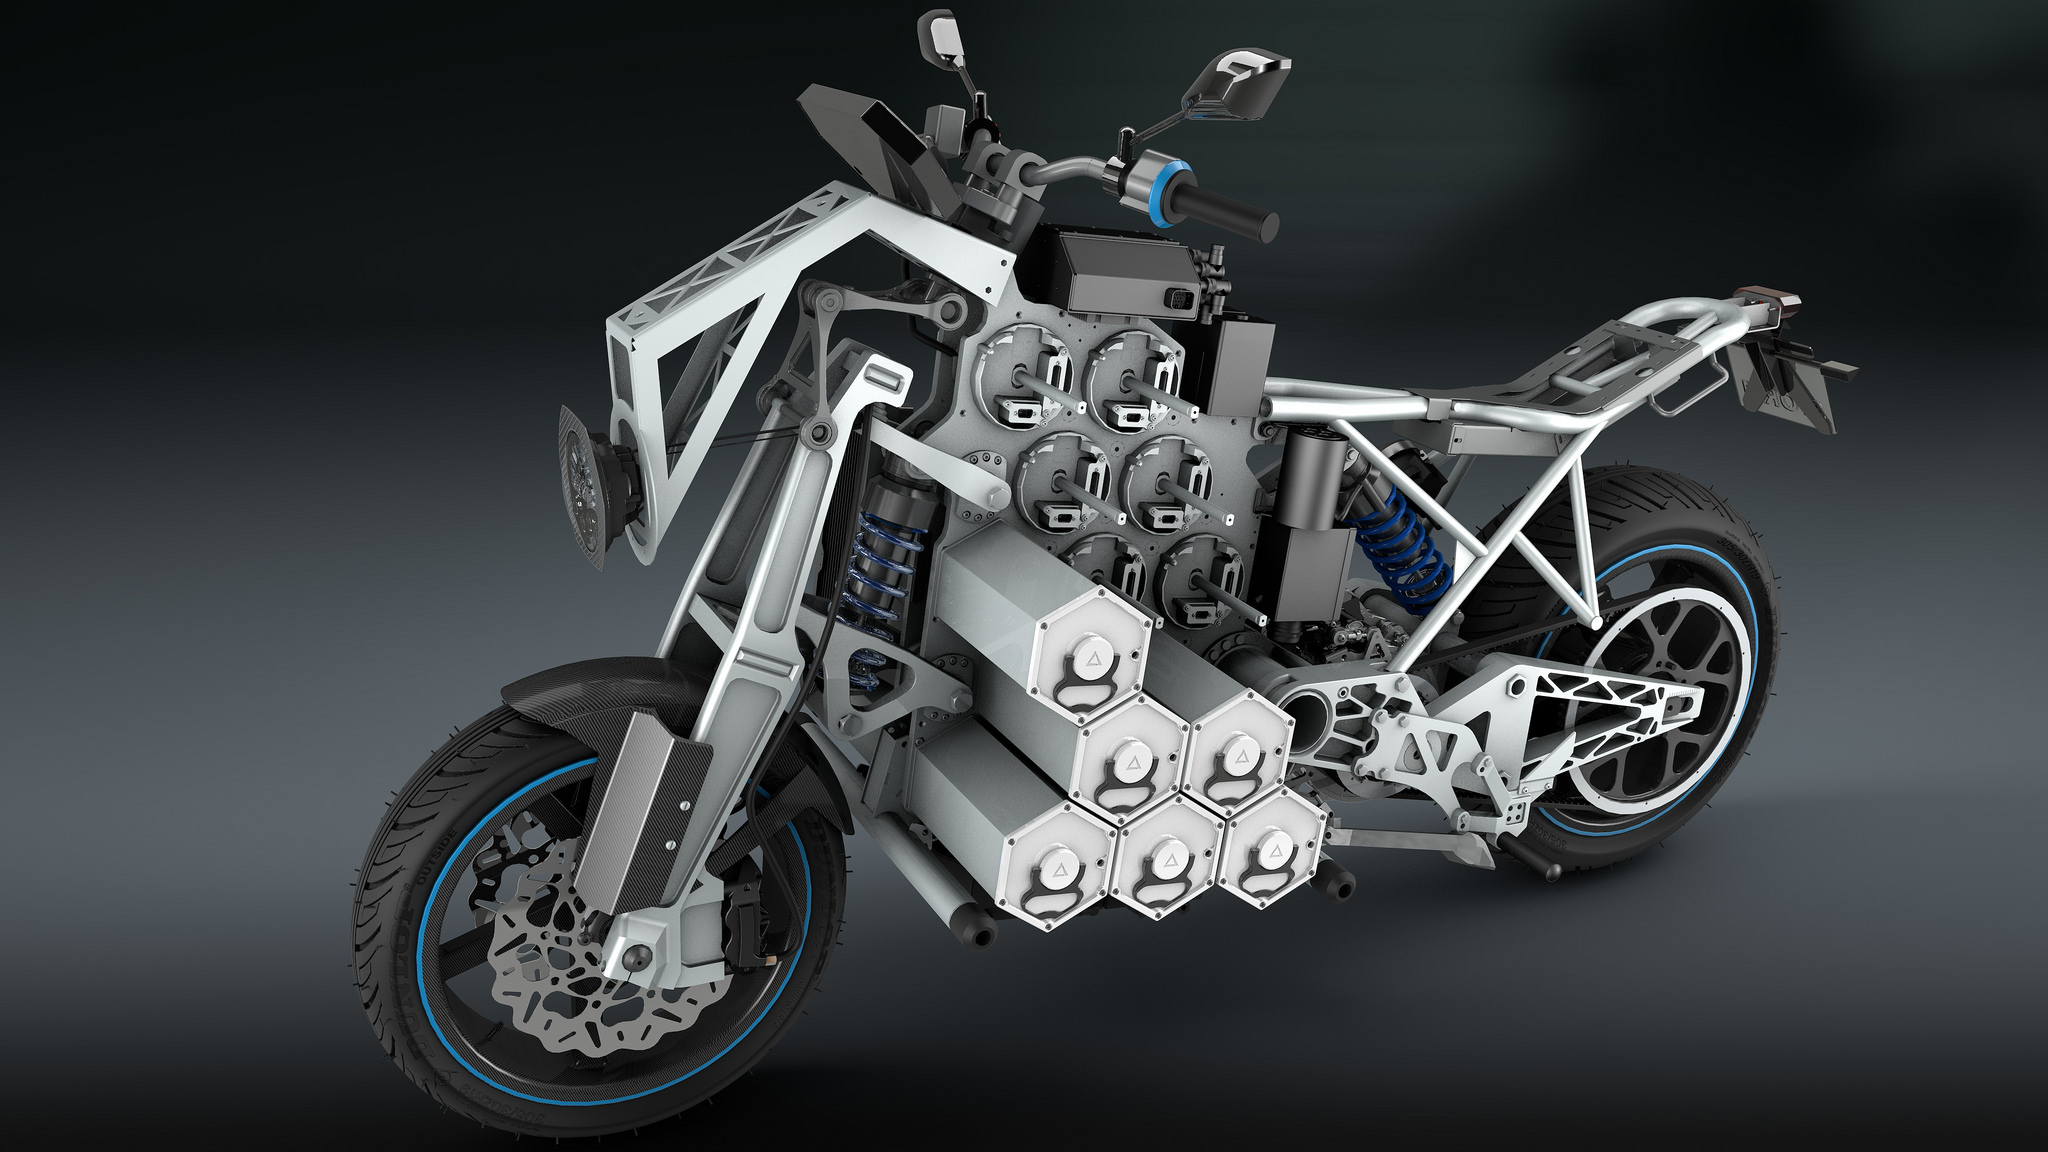 Individual battery cells can be added or removed to either improve range or lighten the overall weight of the motorcycle. (Image: STORM Eindhoven.)